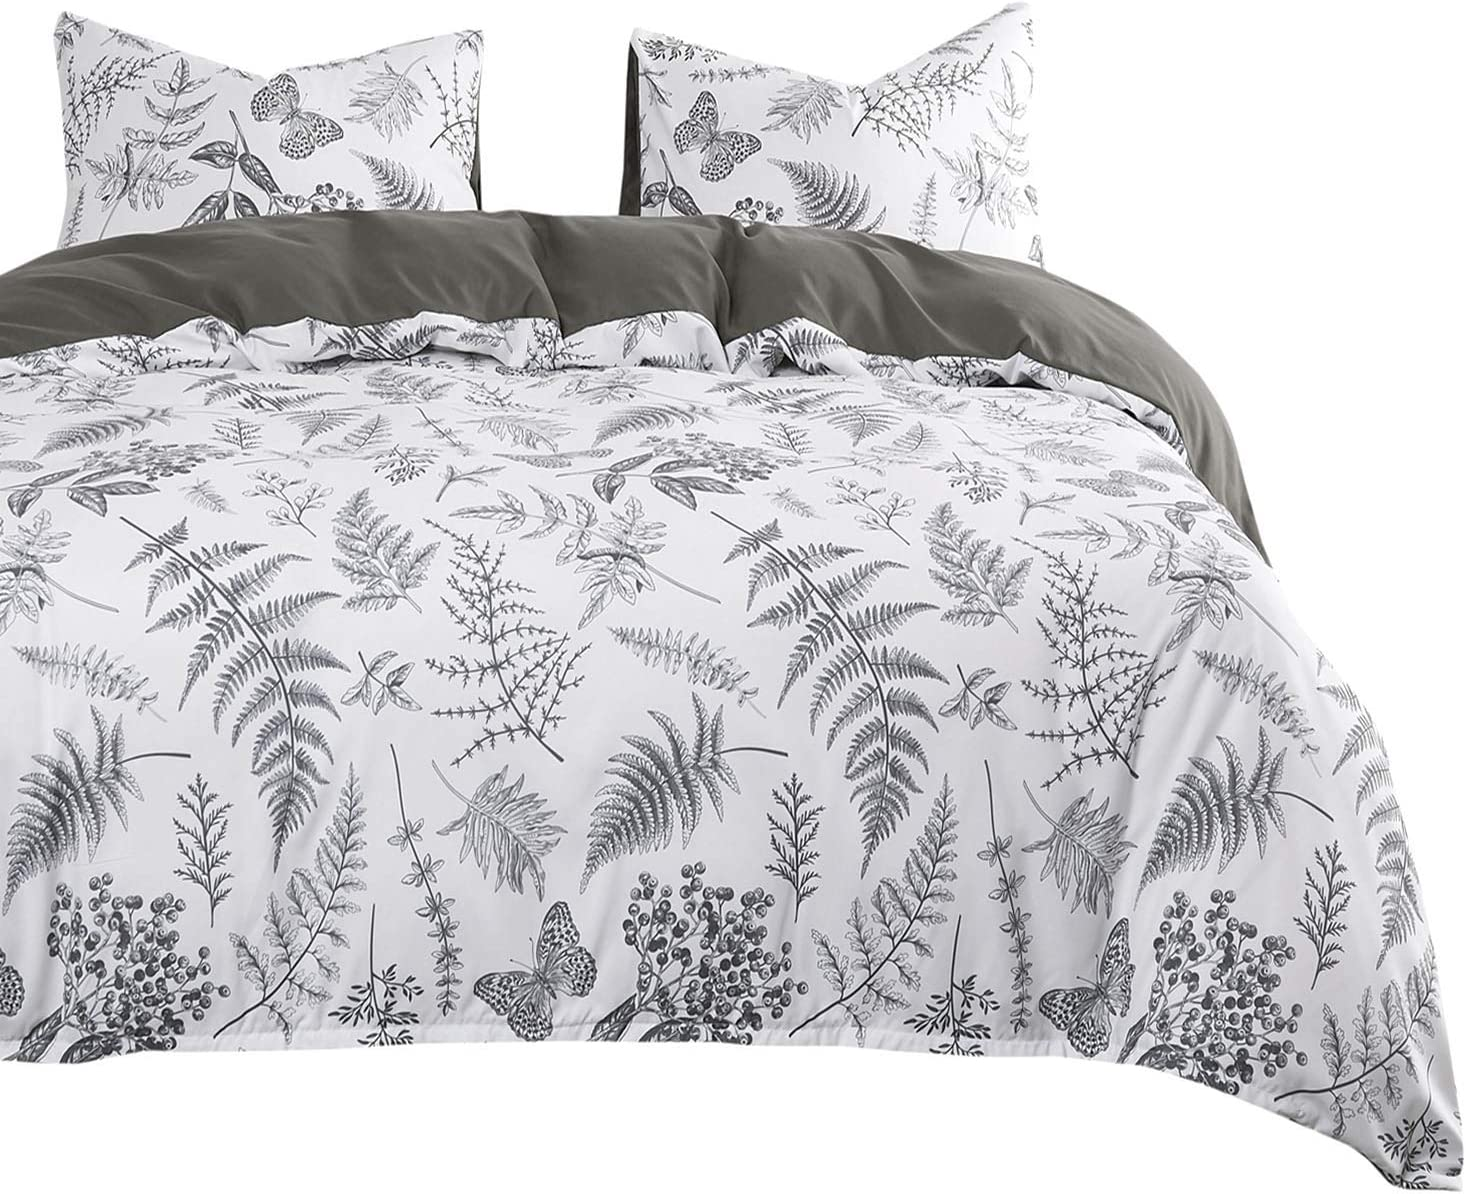 Wake In Cloud - Botanical Comforter Set, Plant Tree Leaves and Butterfly Pattern Printed in Black White Gray Grey, Soft Microfiber Bedding (3pcs, Queen Size)